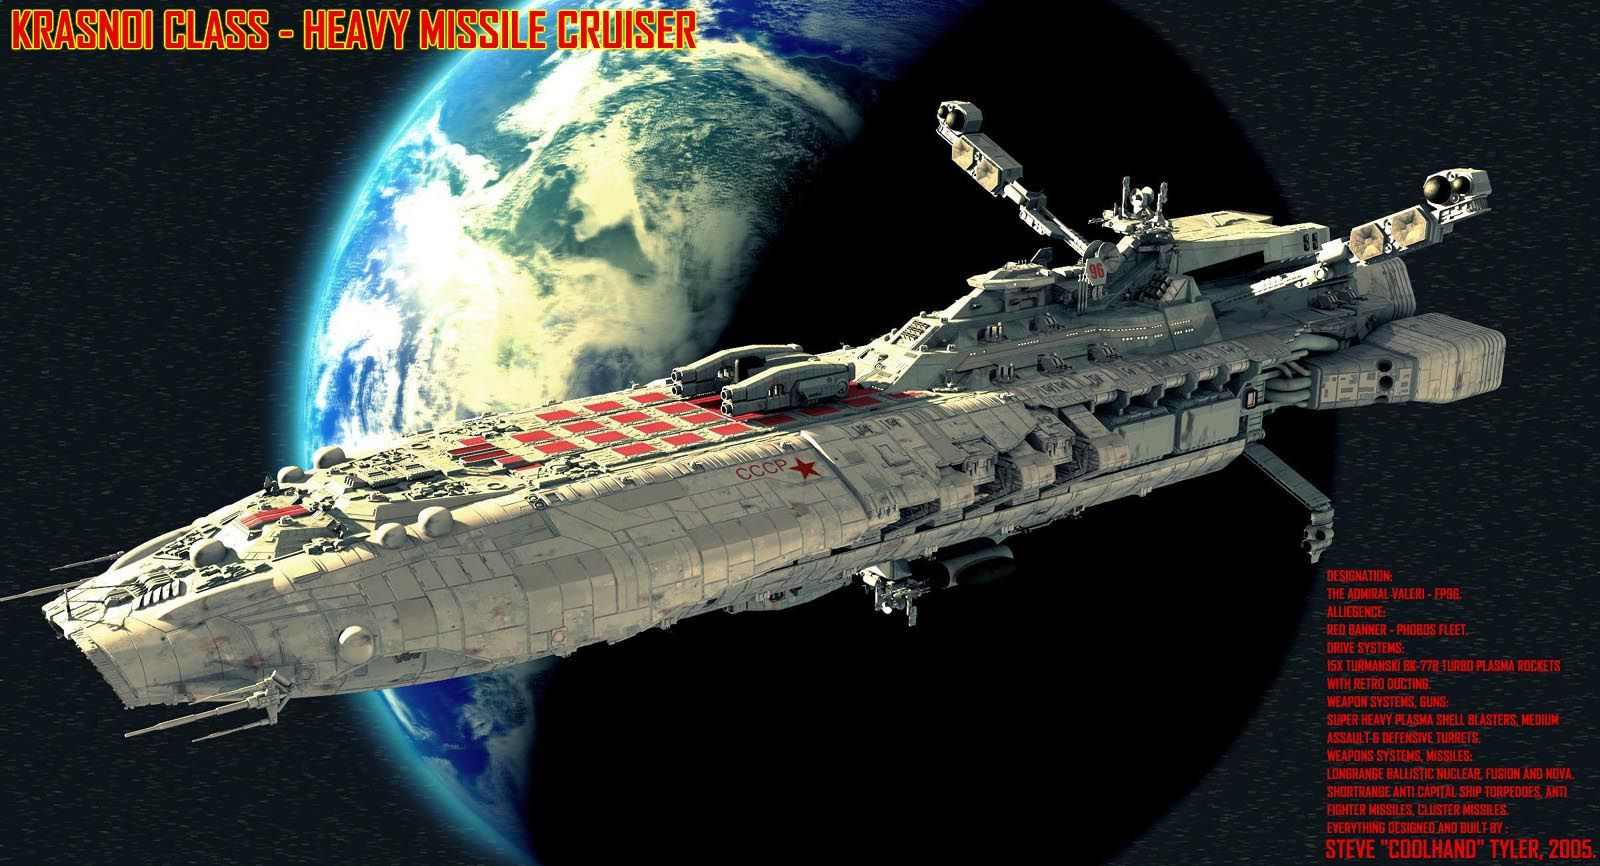 Futuristic Spaceship, Future Starship, deep space, Earth ...